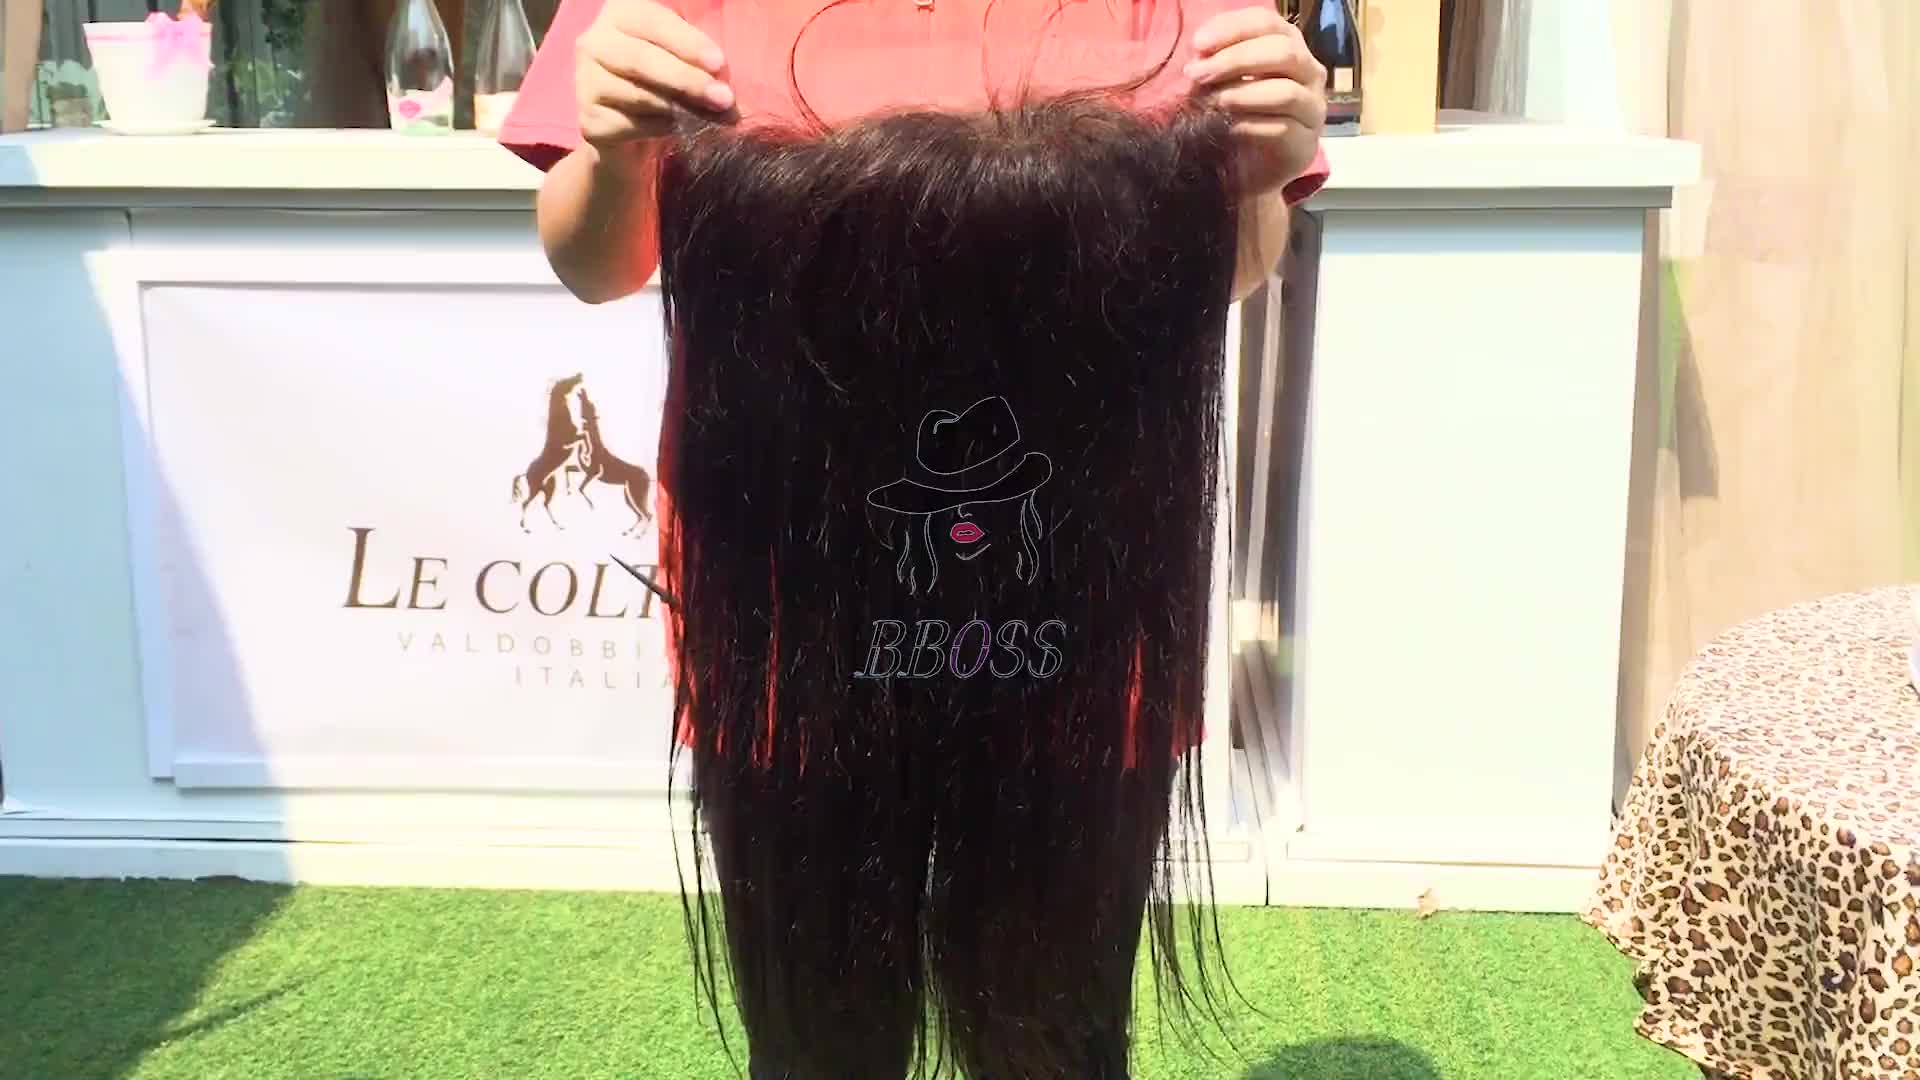 Wholesale brazilian human hair full lace wig with baby hair,virgin human hair wigs for black women,10A human hair lace front wig